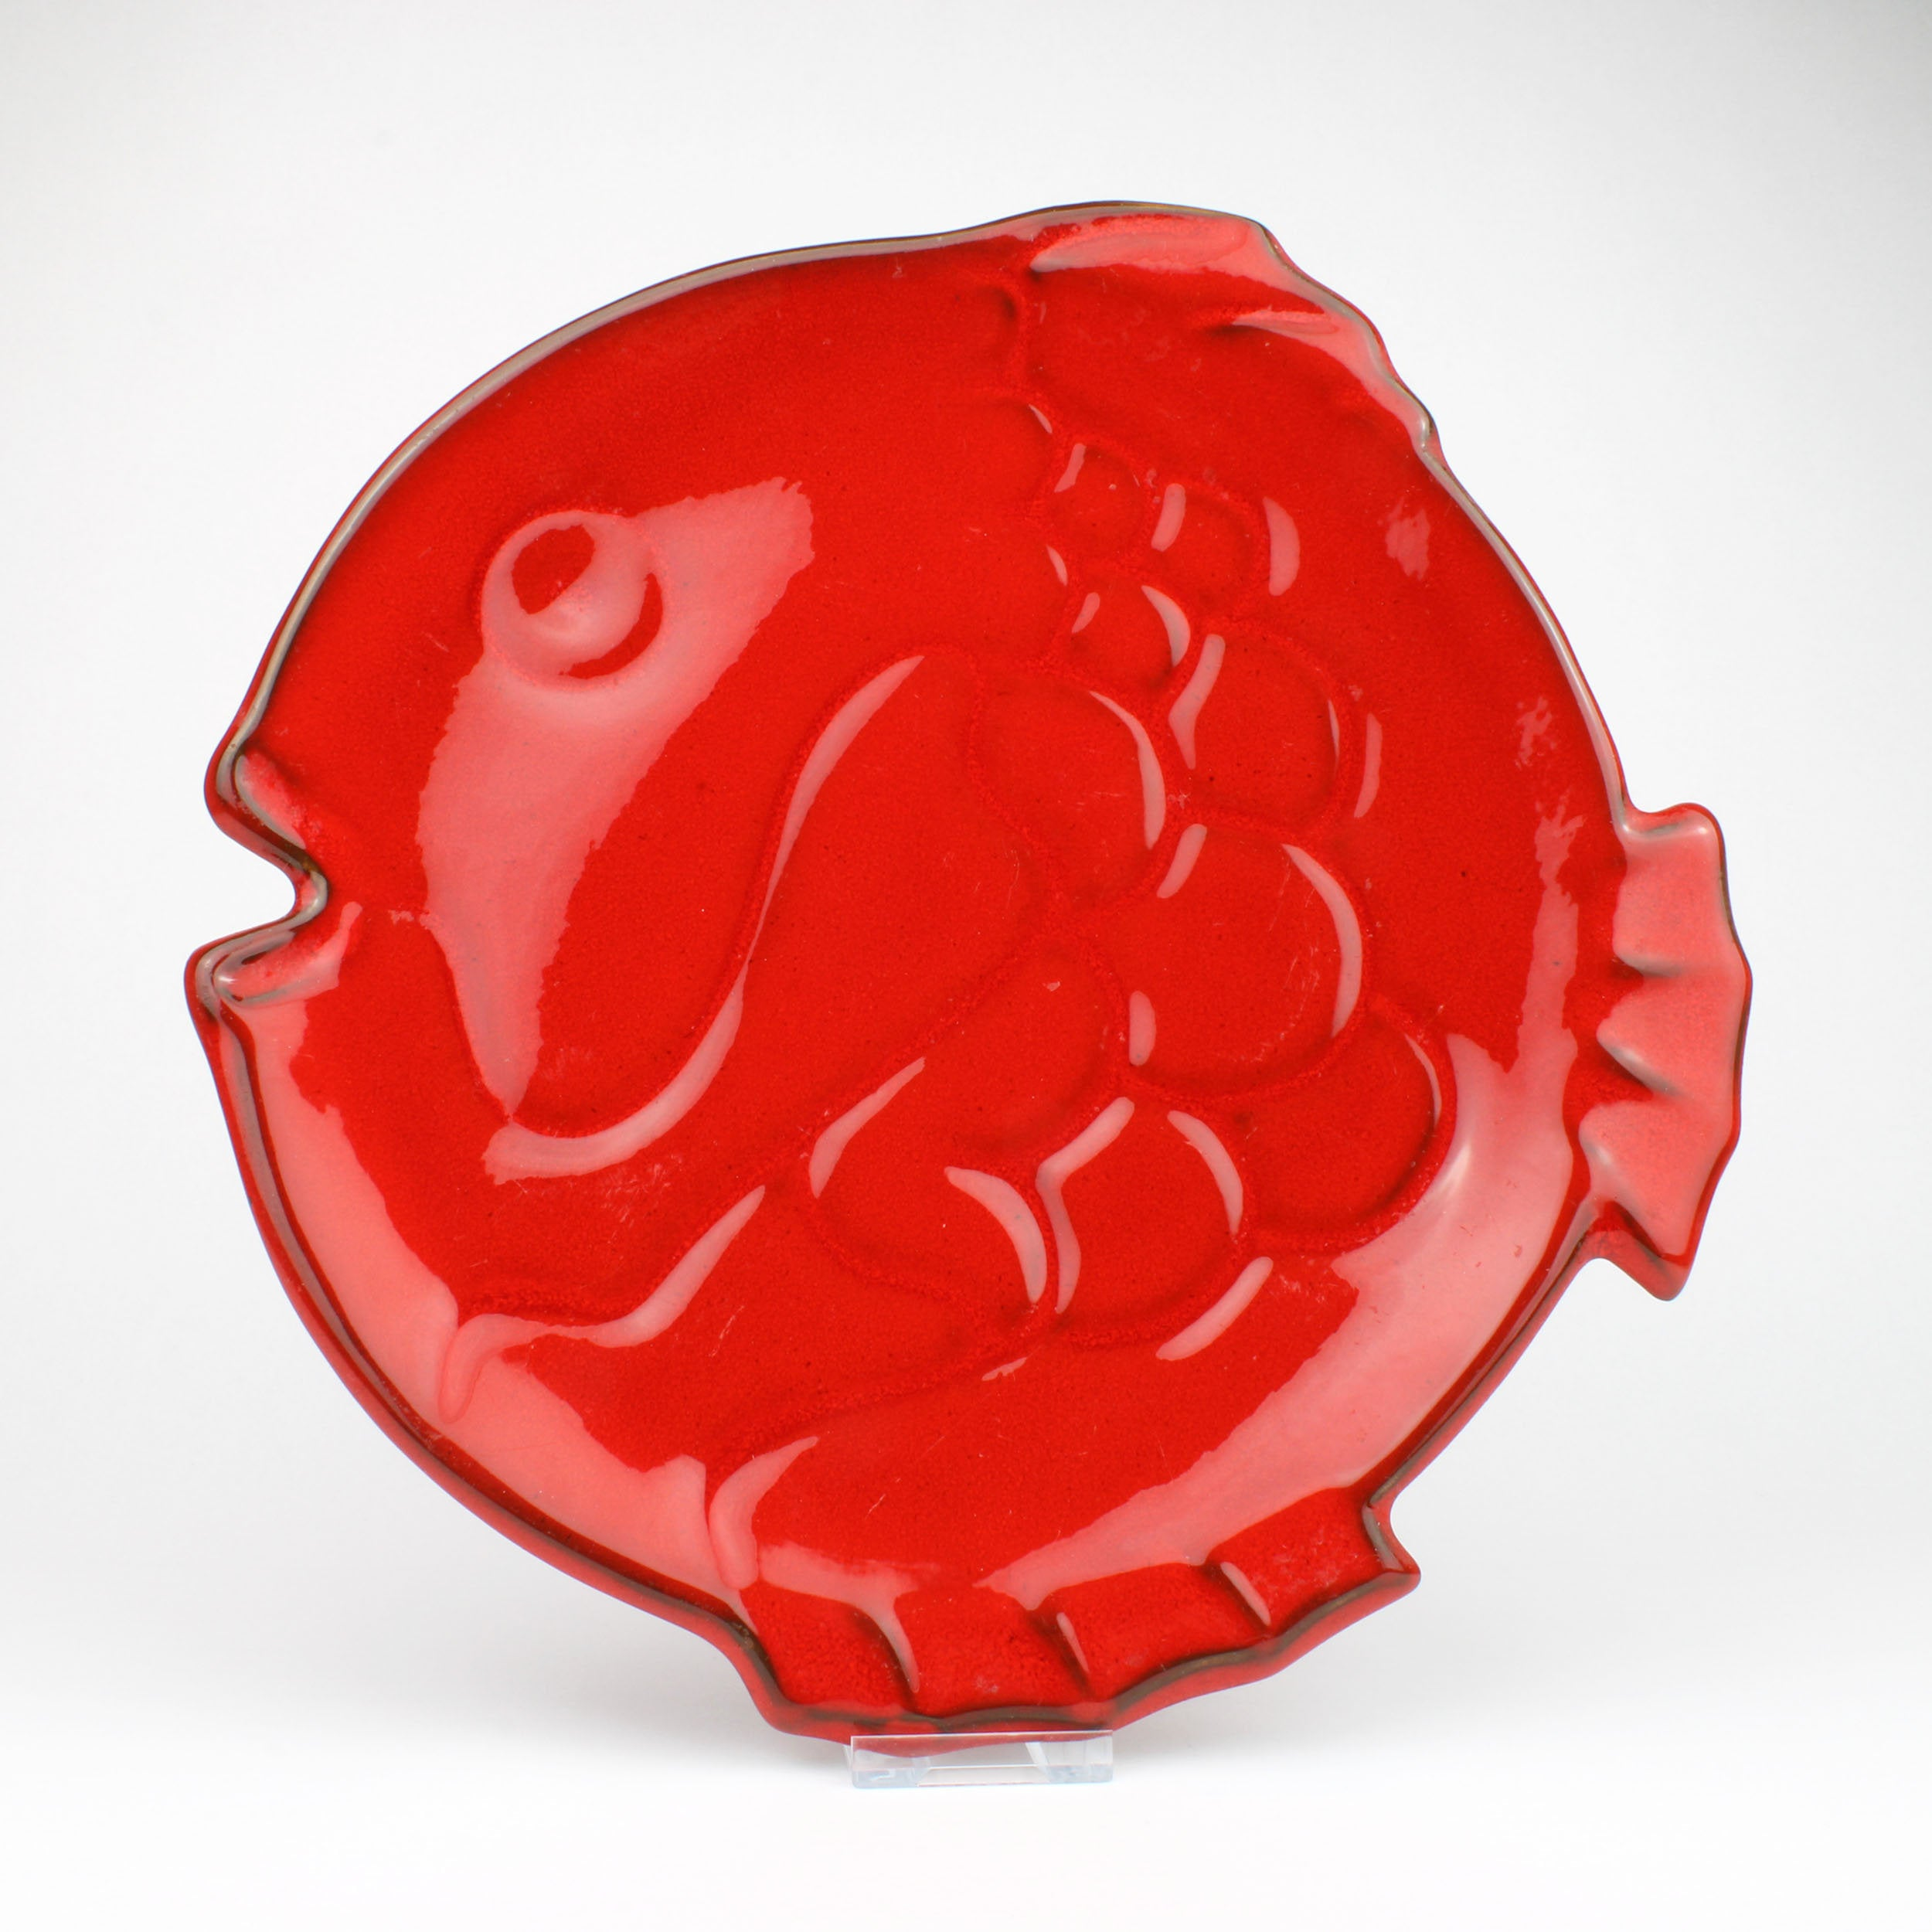 Red Ceramic Fish Platter by Ernestine Virden Cannon, Salerno, Italy